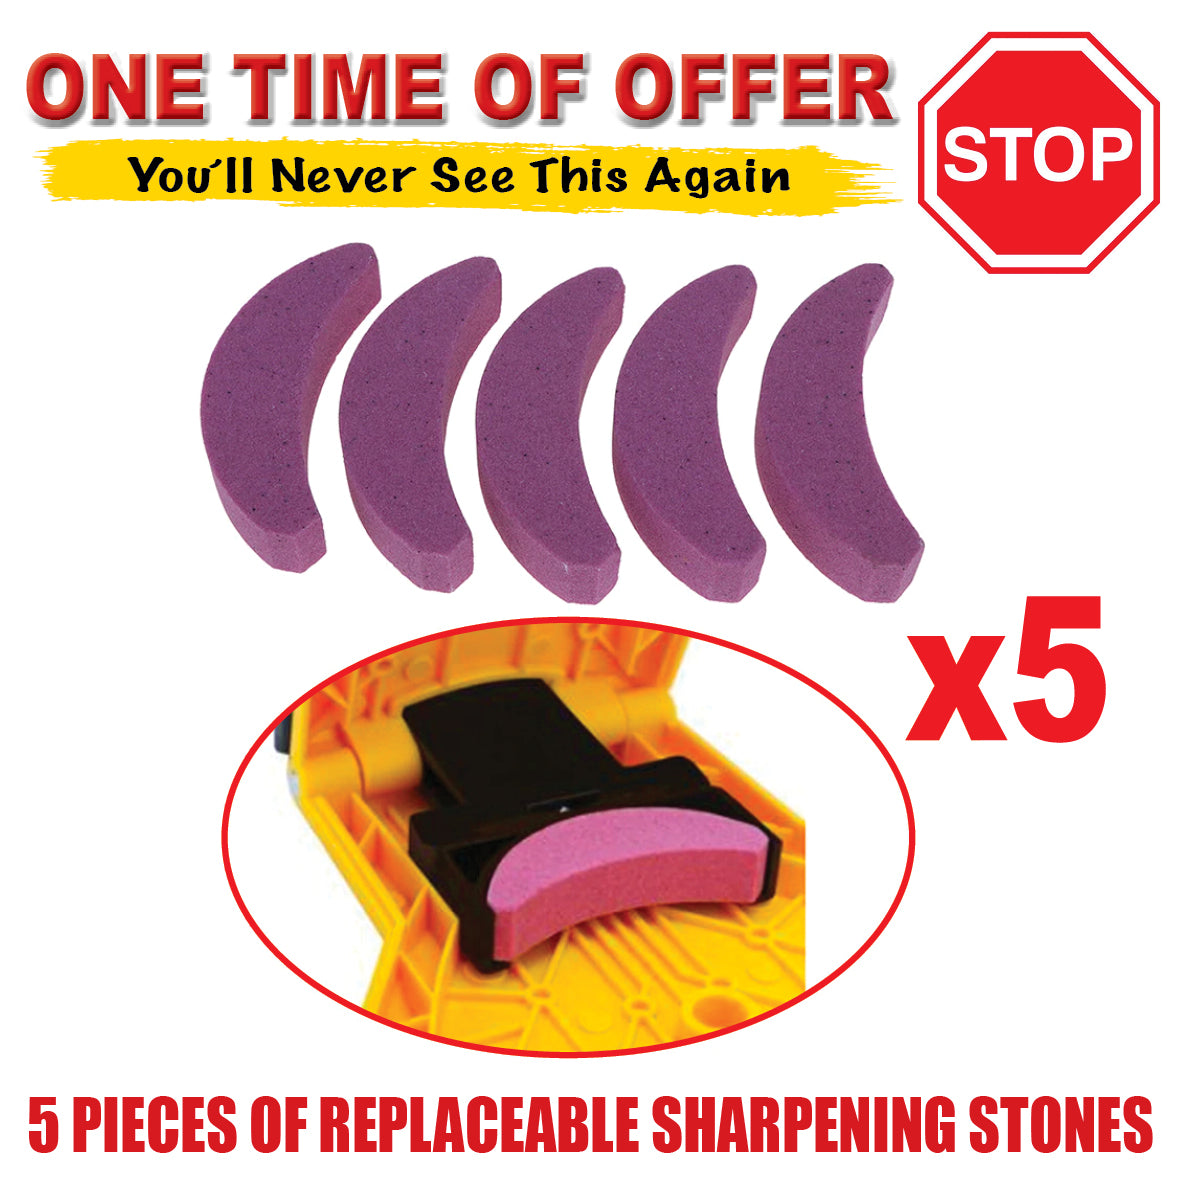 5PCS Sharpening Stone Whetstone Replacement - SPECIAL OFFER 🔥